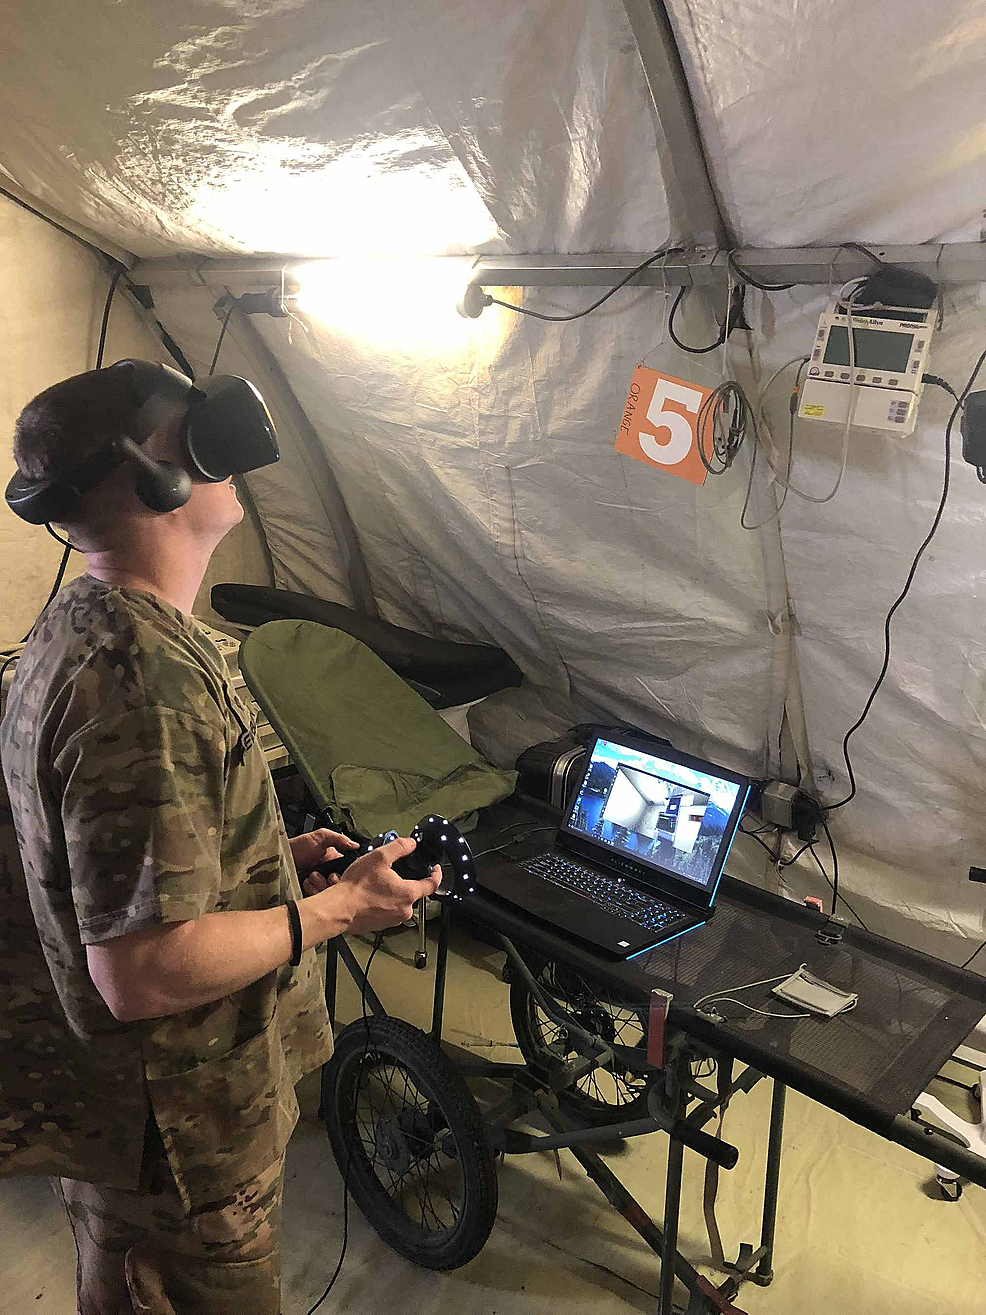 Medic-completing-an-immersive-virtual-reality-trauma-simulation